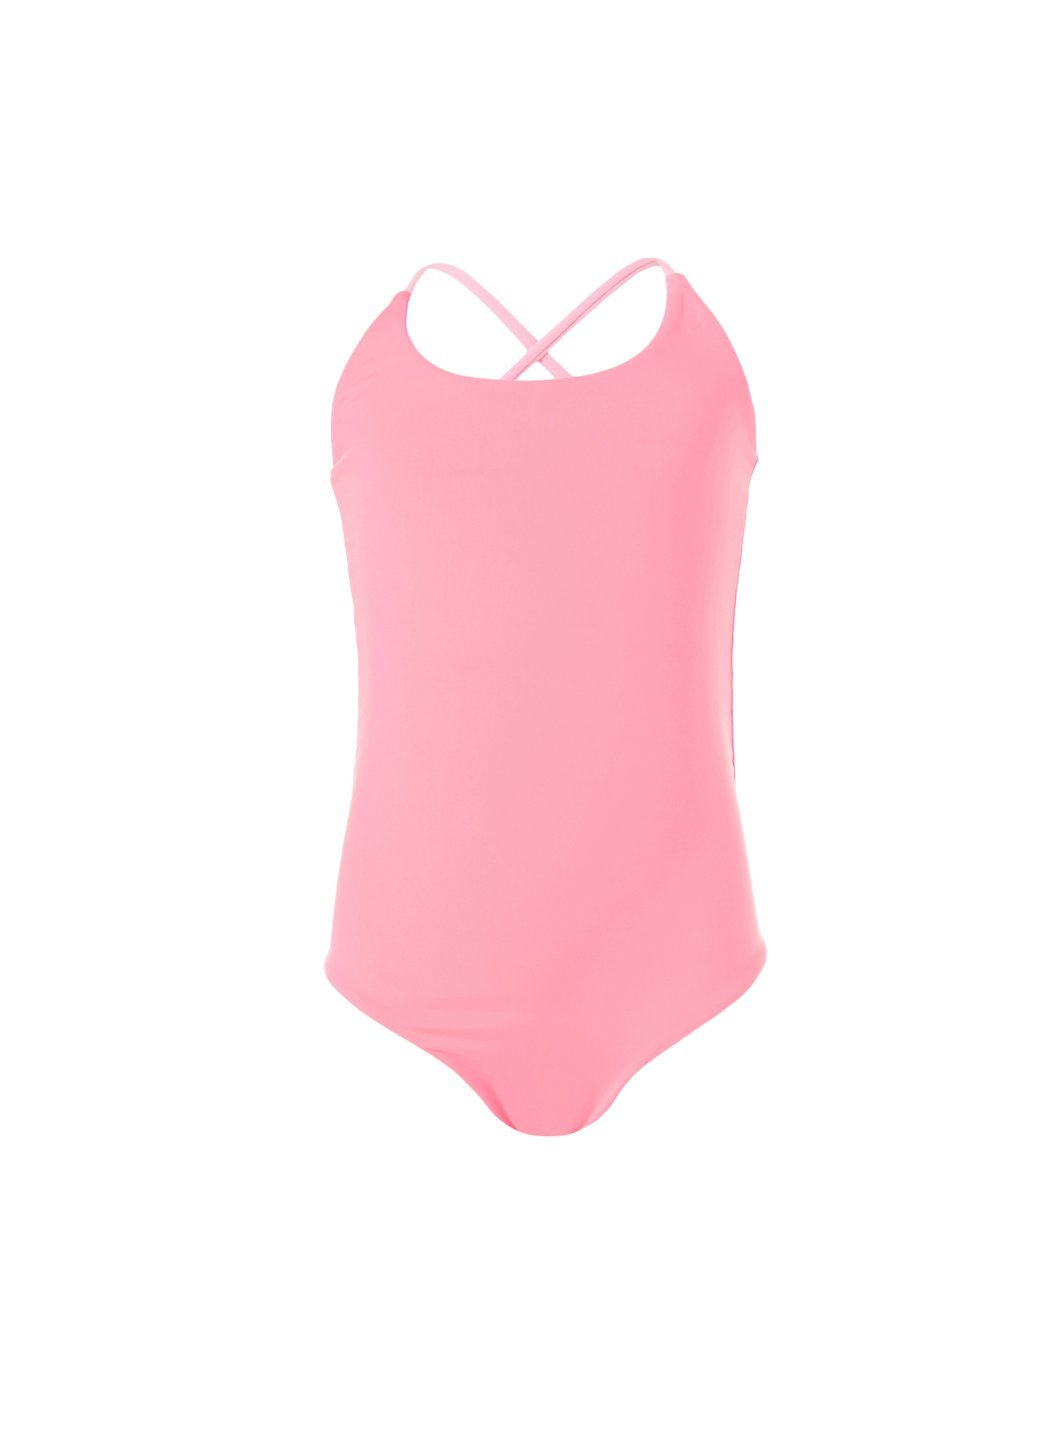 baby vicky pale pink neon cross back onepiece swimsuit 2019